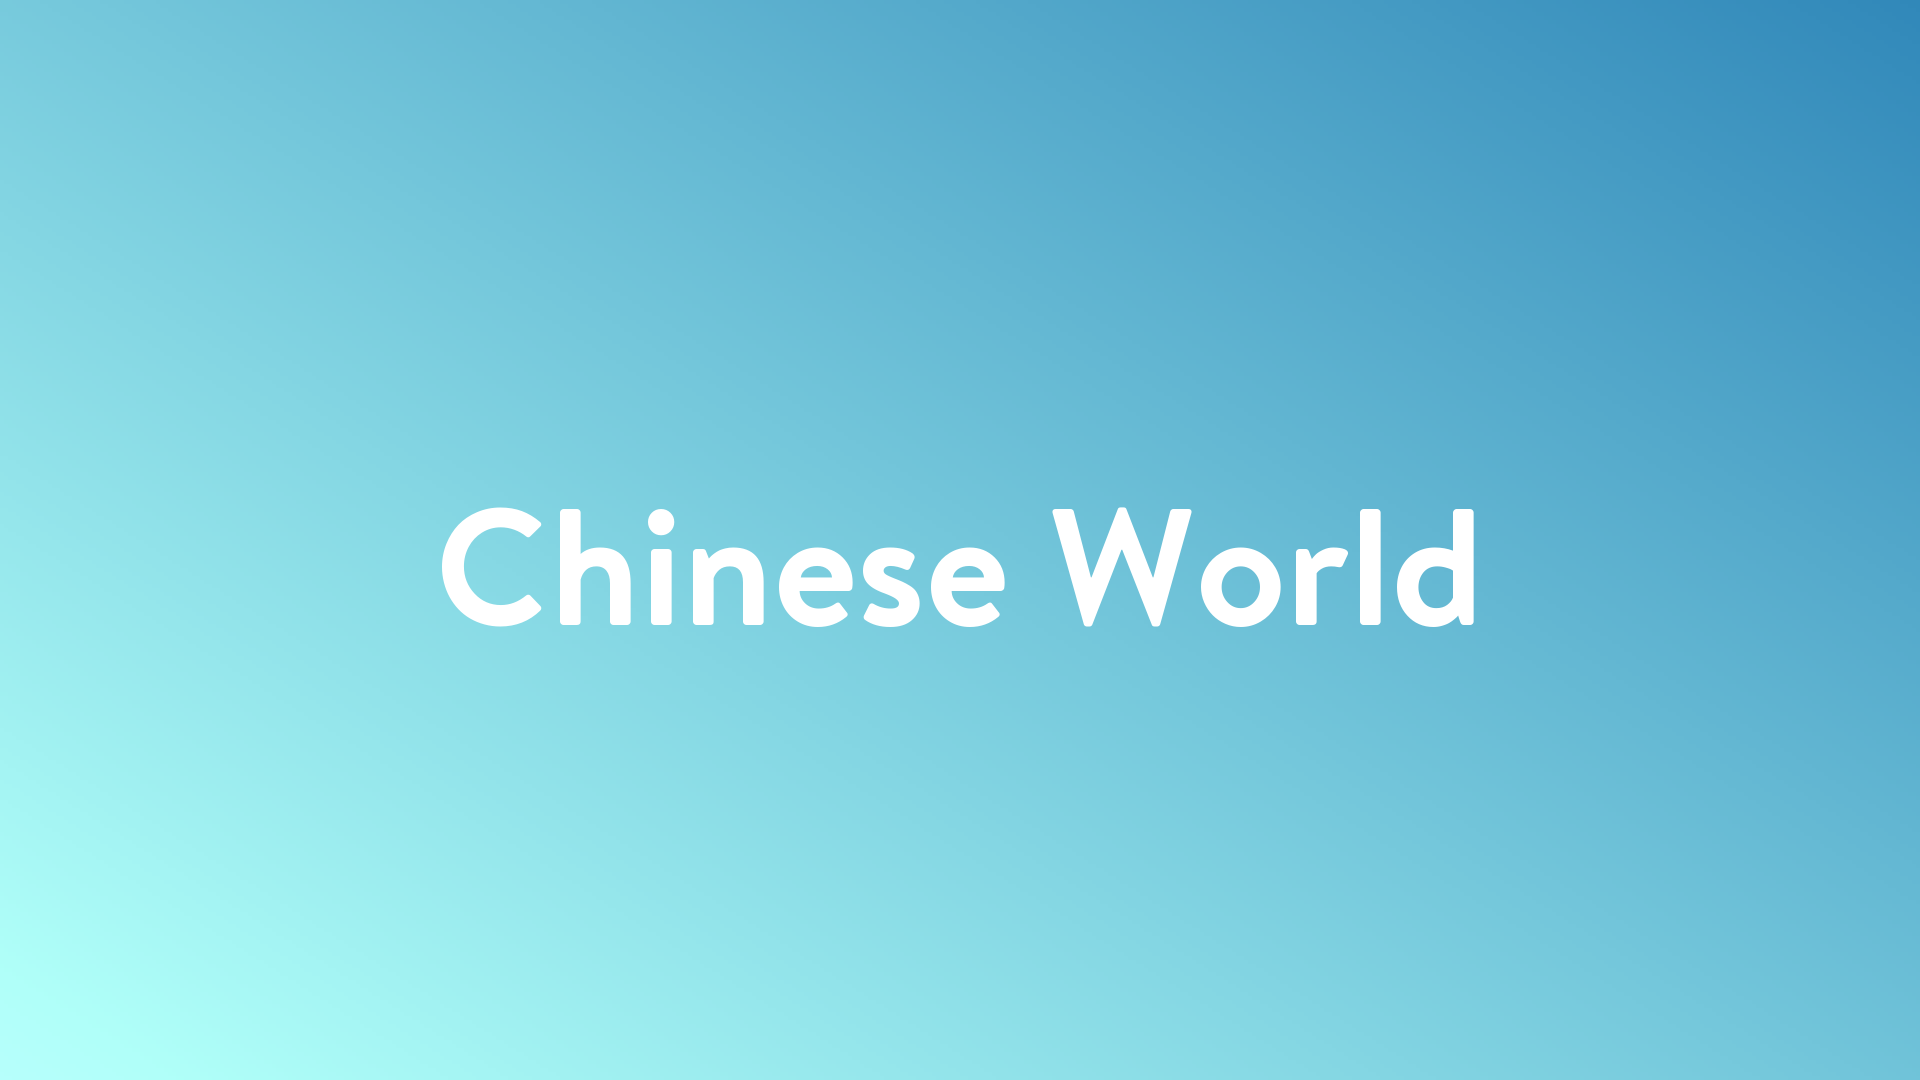 Stream And Watch Chinese World Online | Sling TV